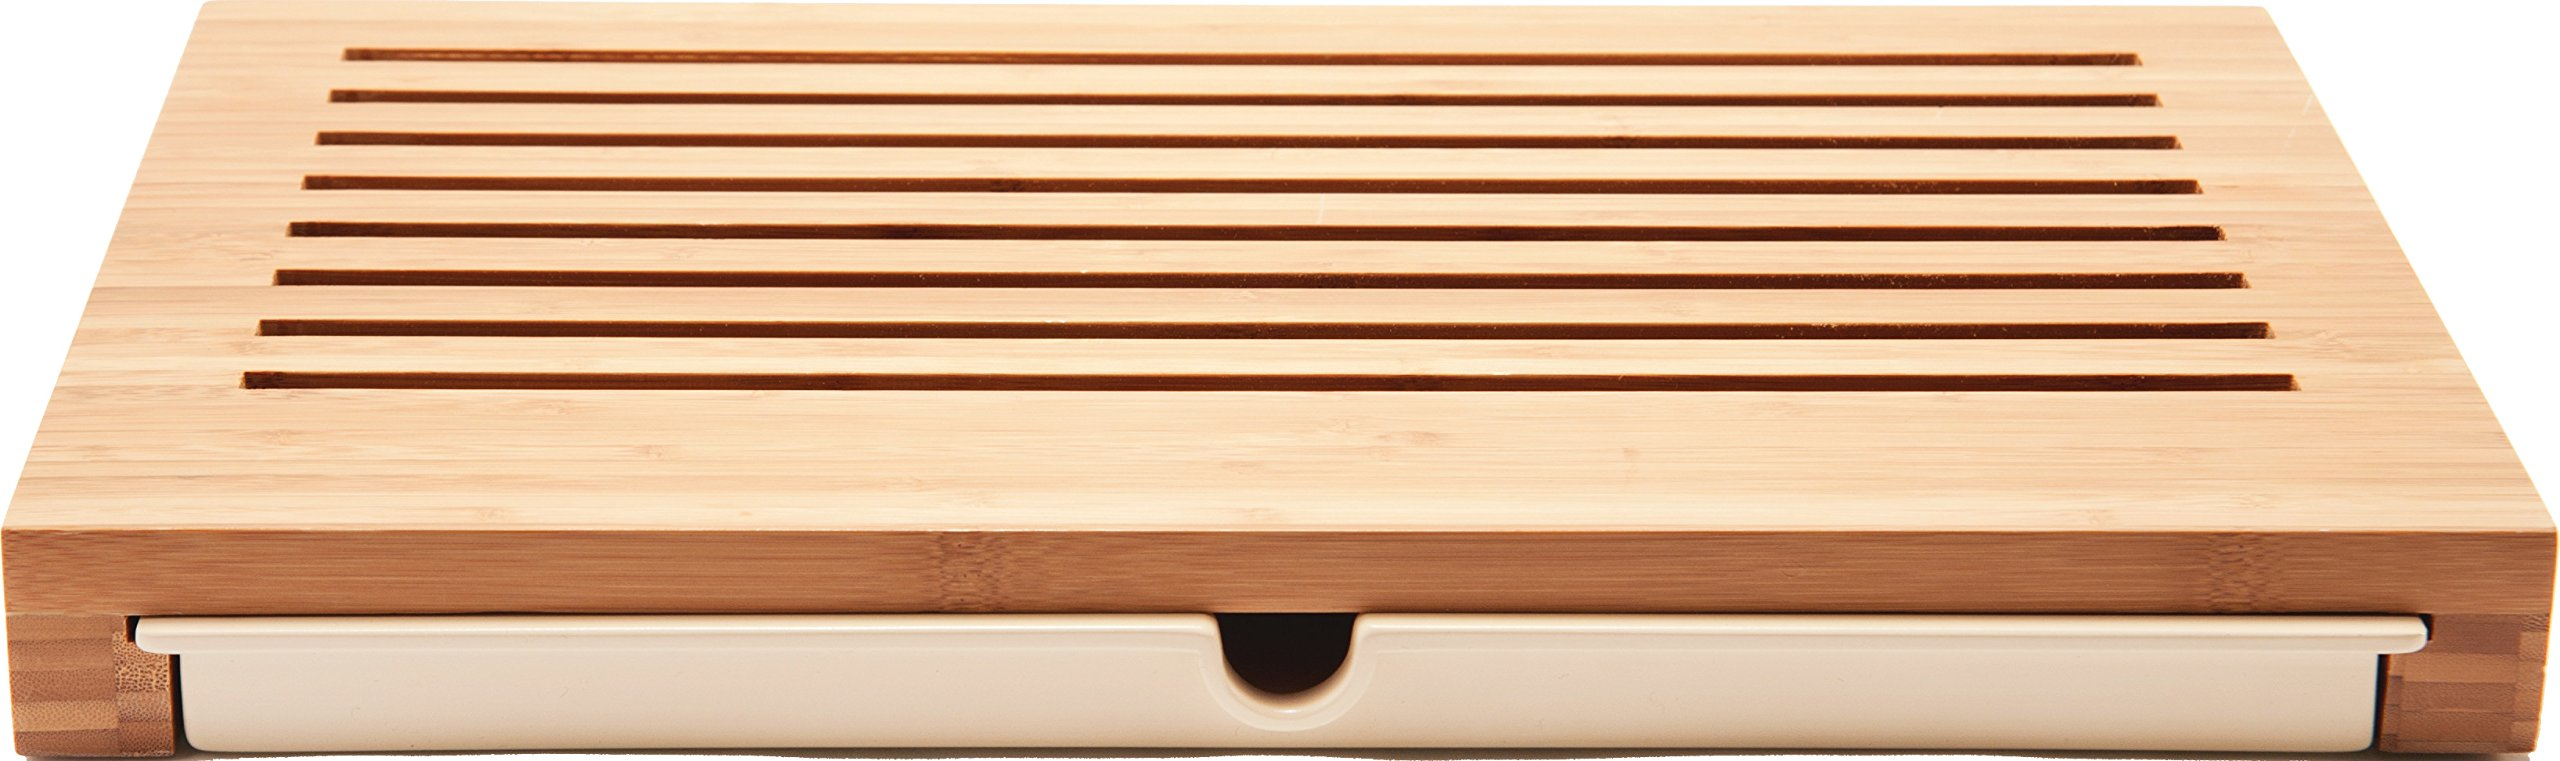 Alessi ''Sbriciola'' Bread Board in Bamboo Wood With Crumb Catcher in Thermoplastic Resin, Wood by Alessi